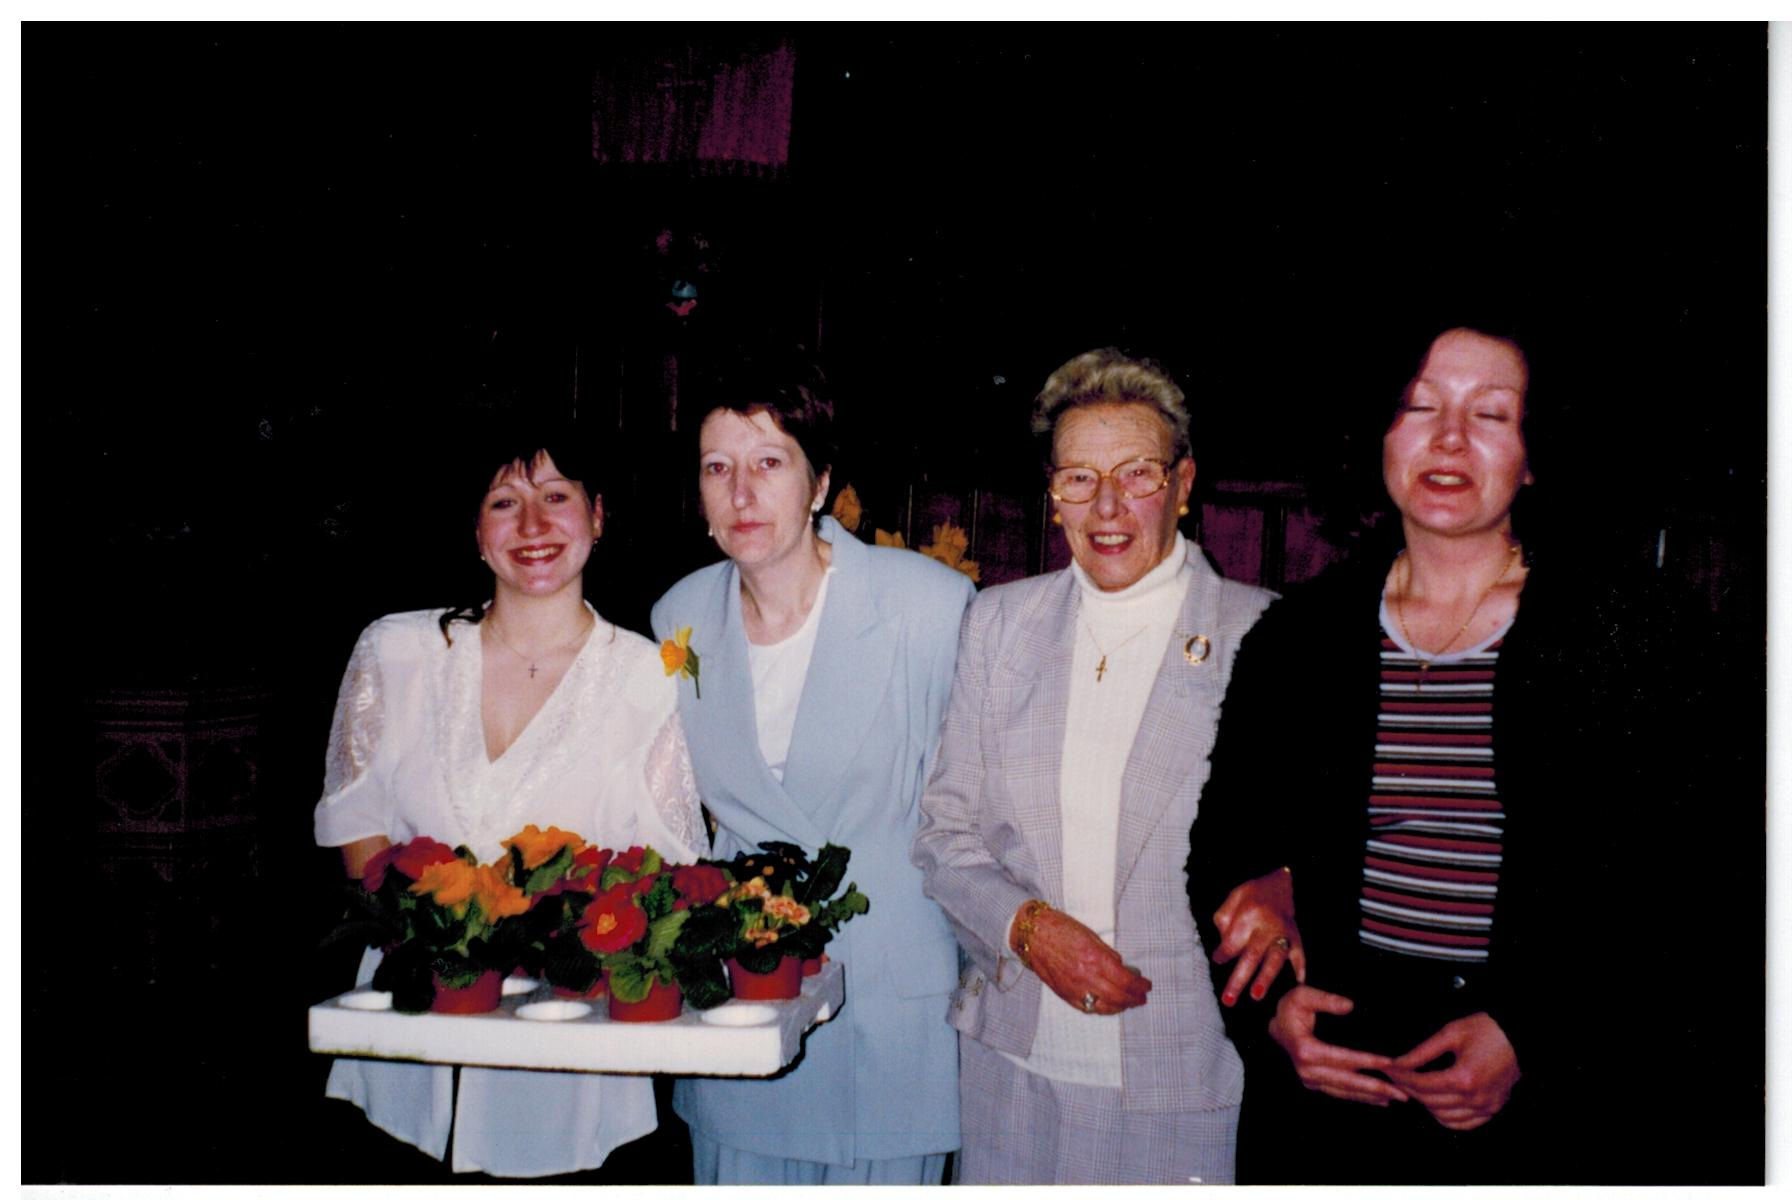 N027_Mothers-Day-[22-03-1998]